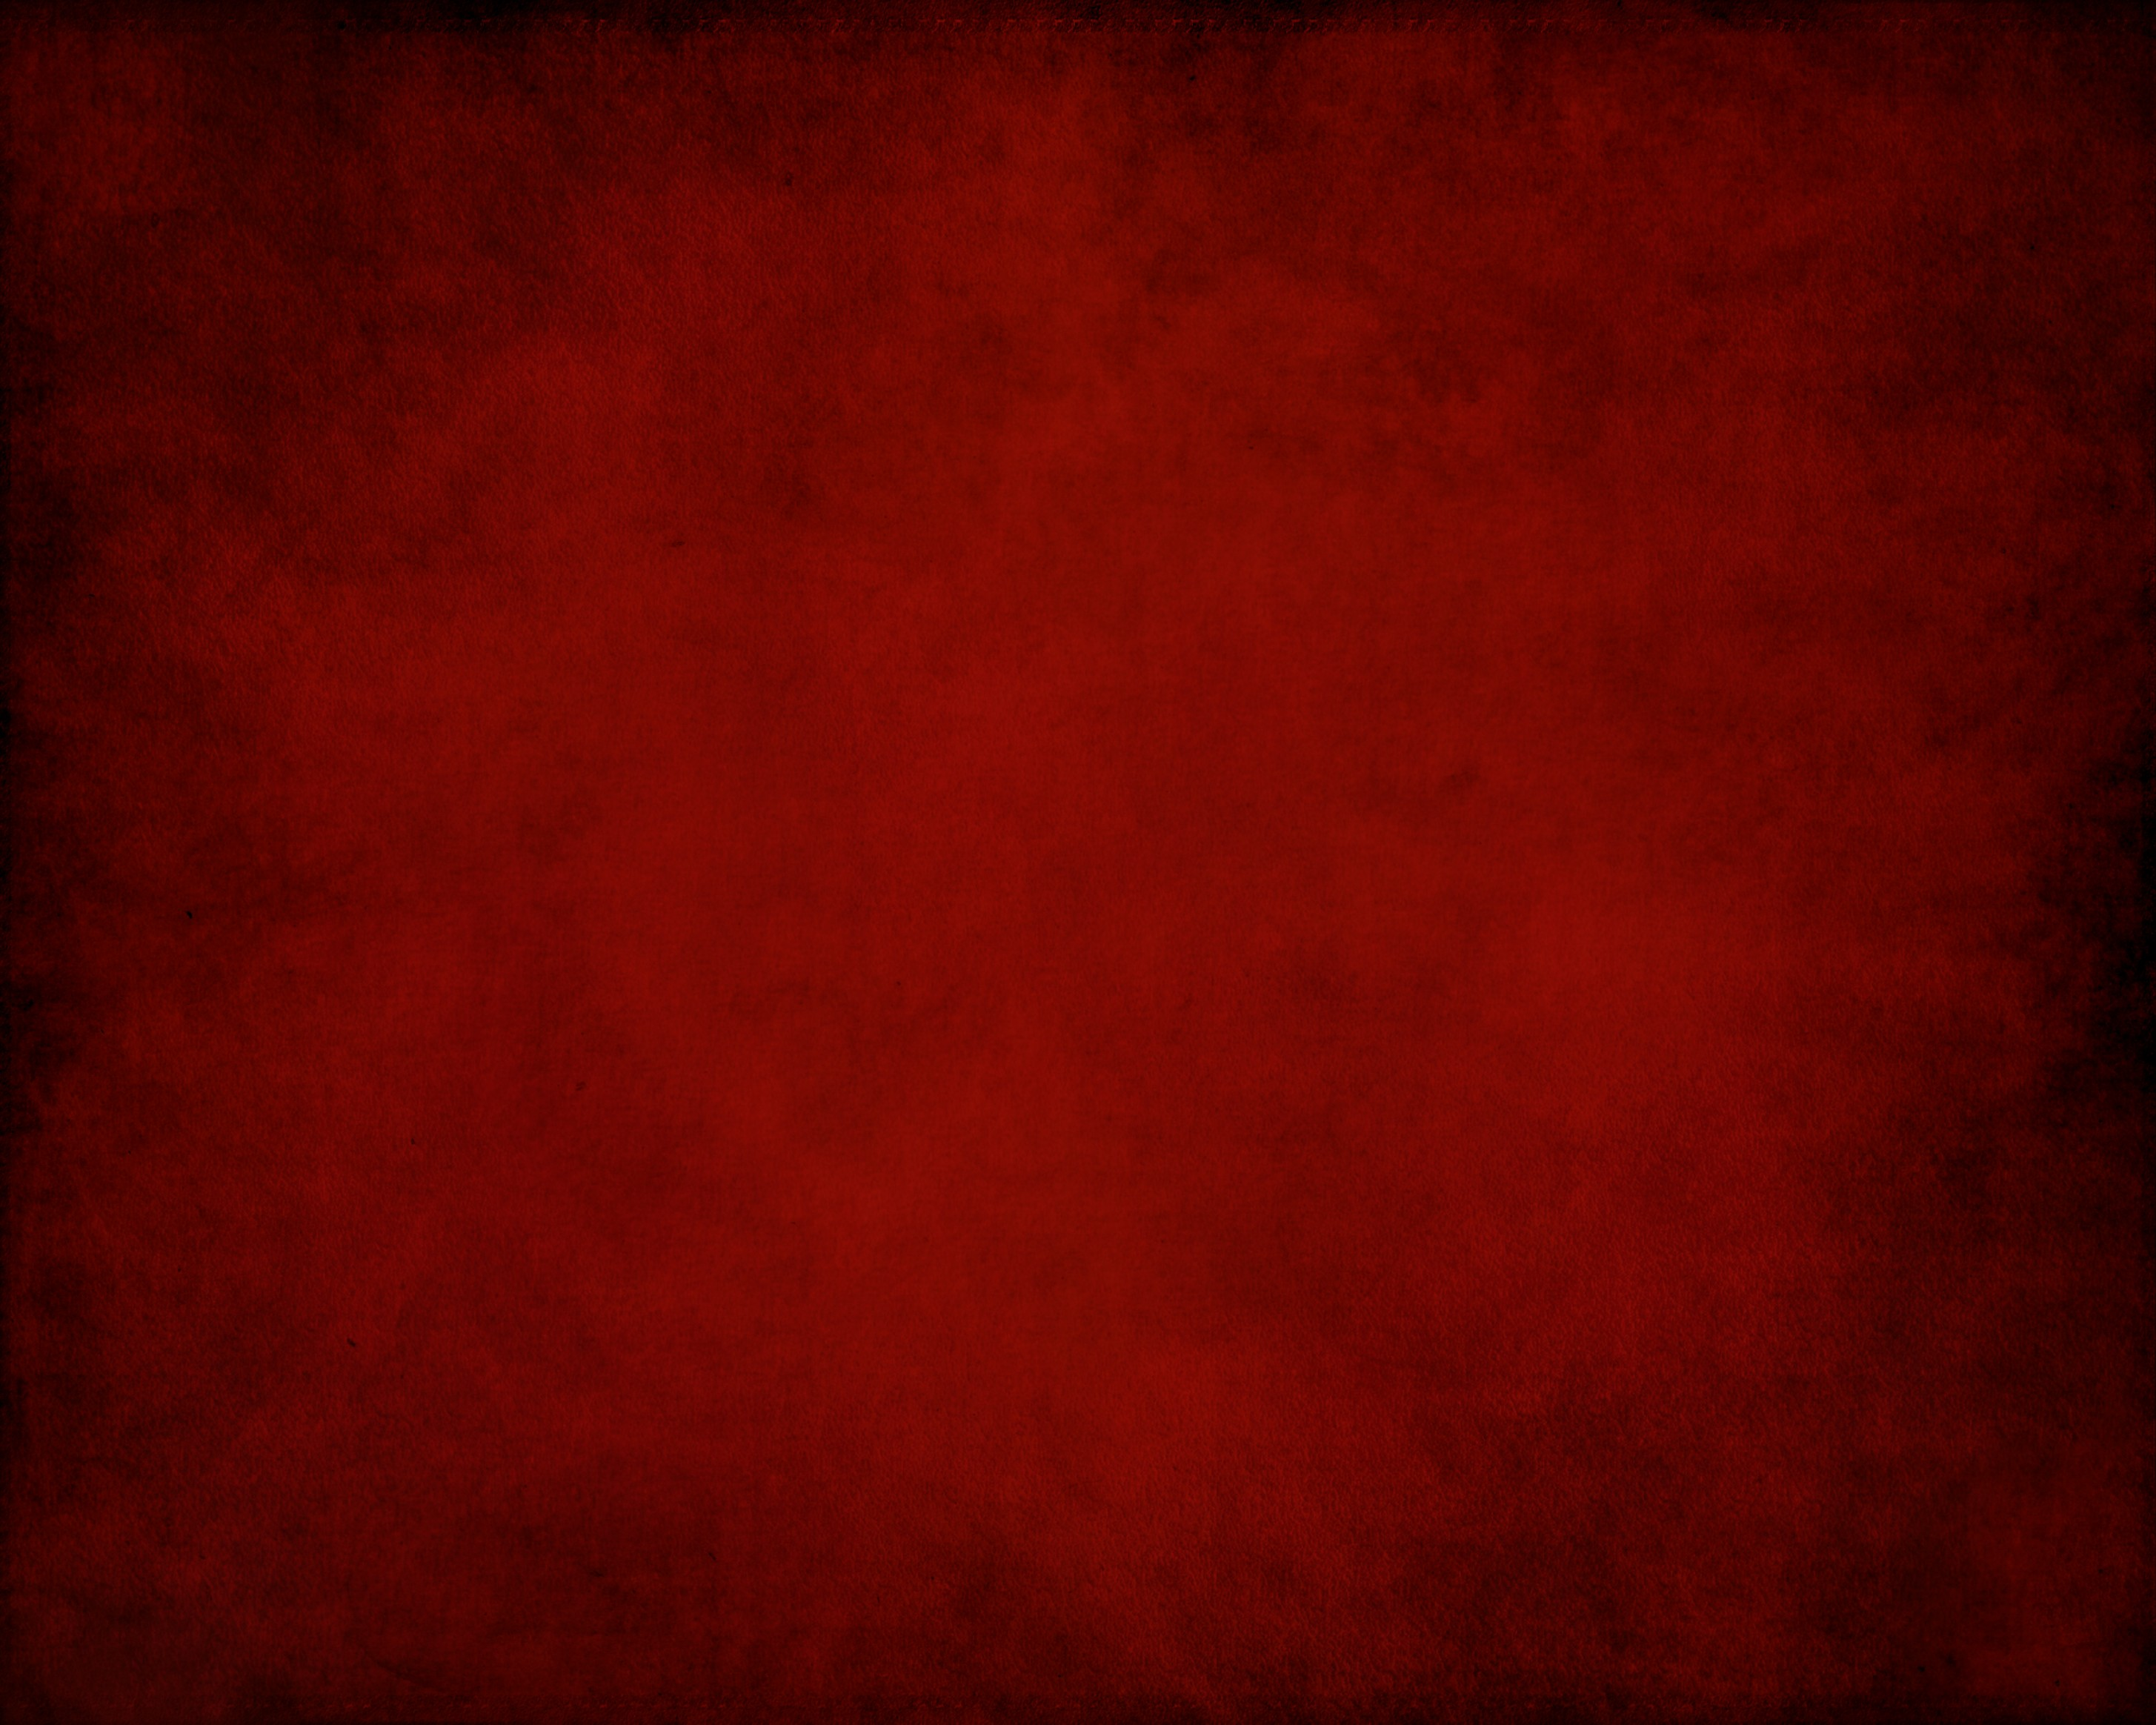 red texture Flickr Photo Sharing